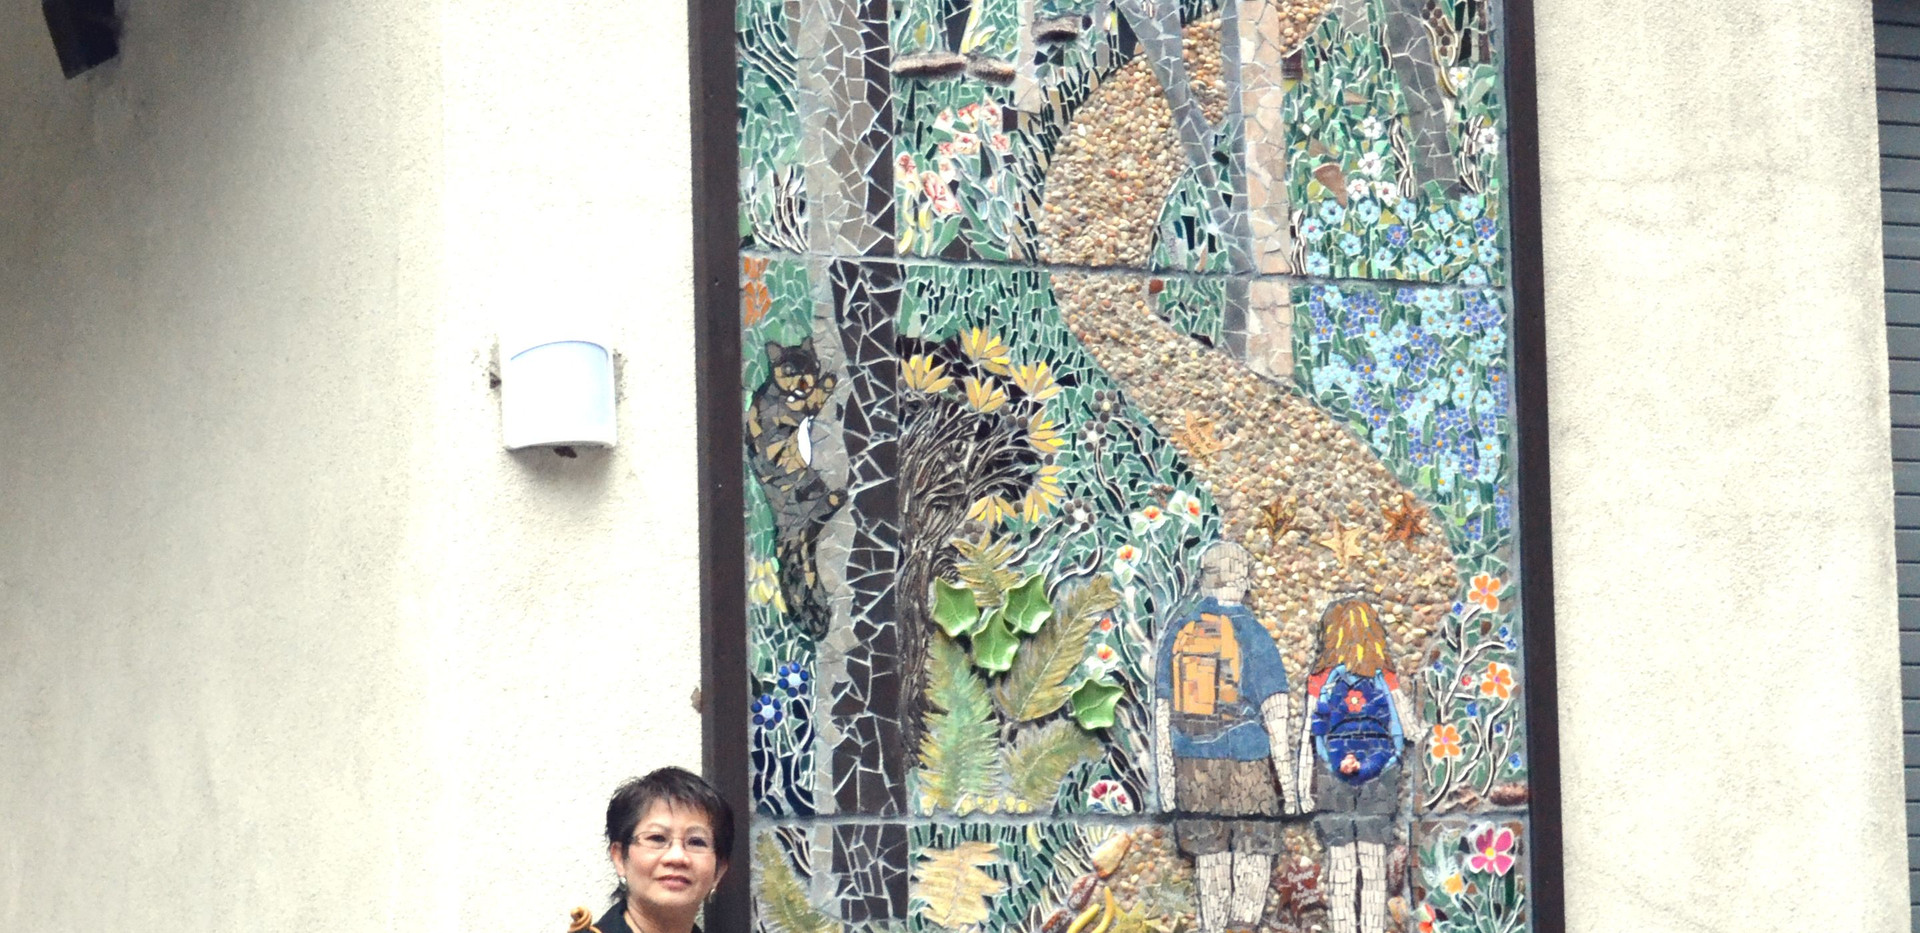 The completed mural and I - the leading artist